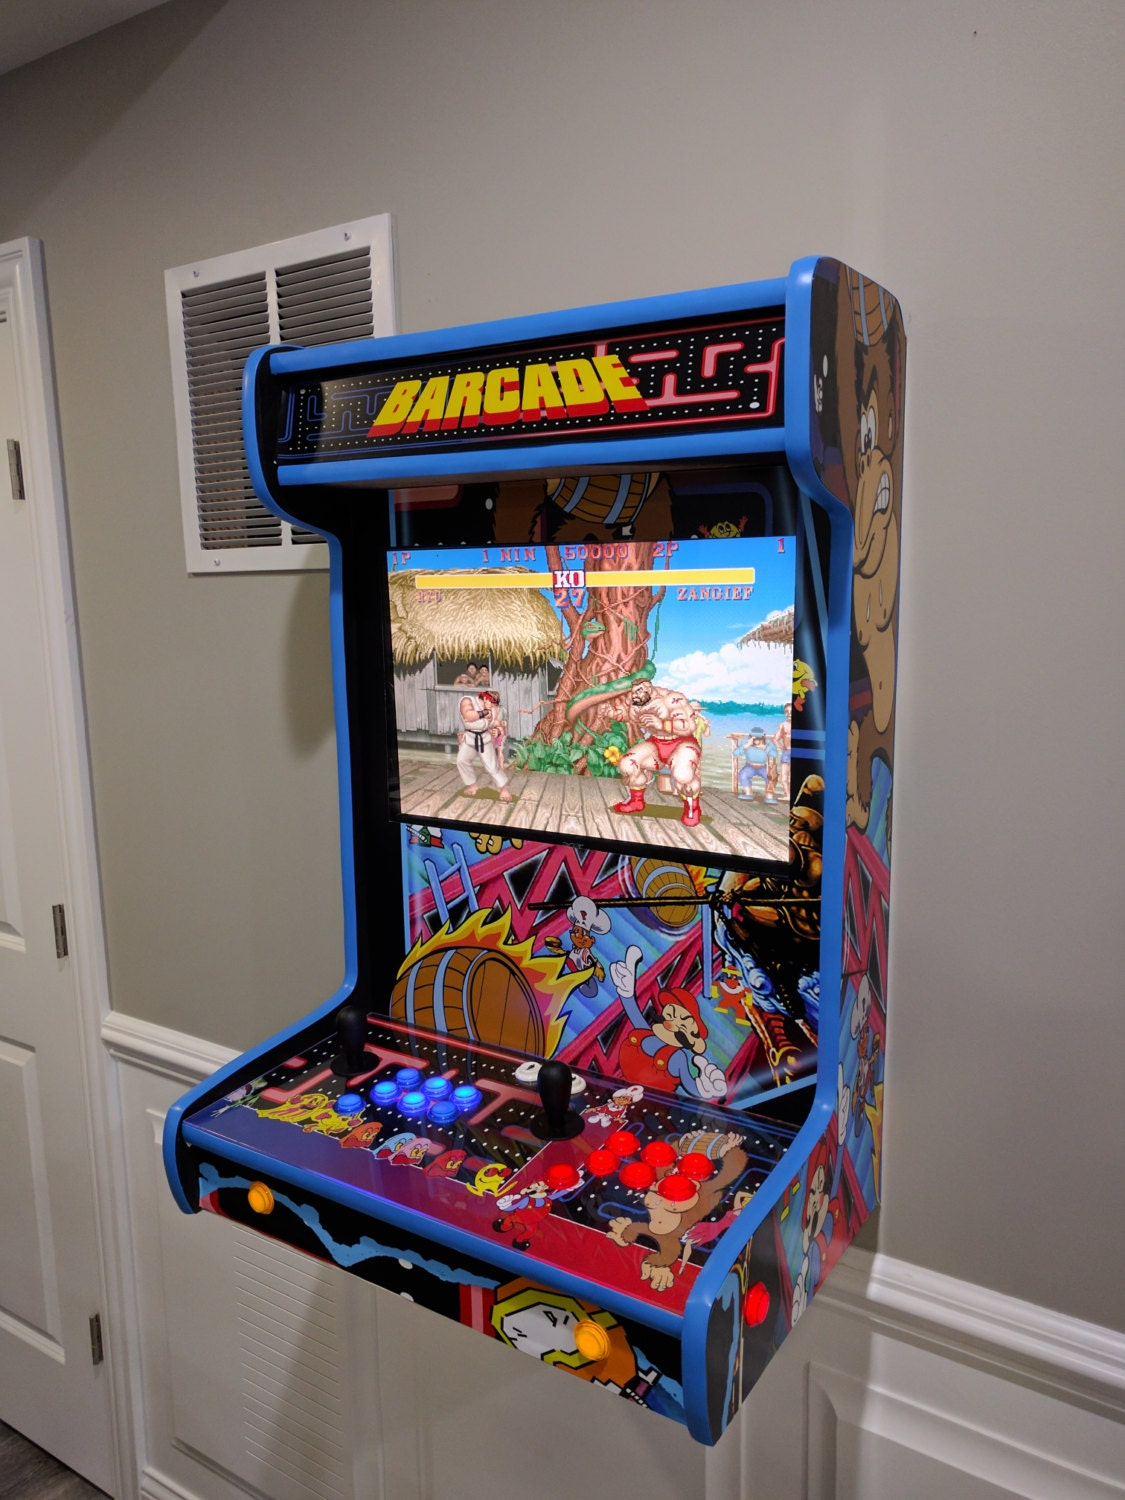 game aceamusements machines arcade pi multi us cabinet video custom